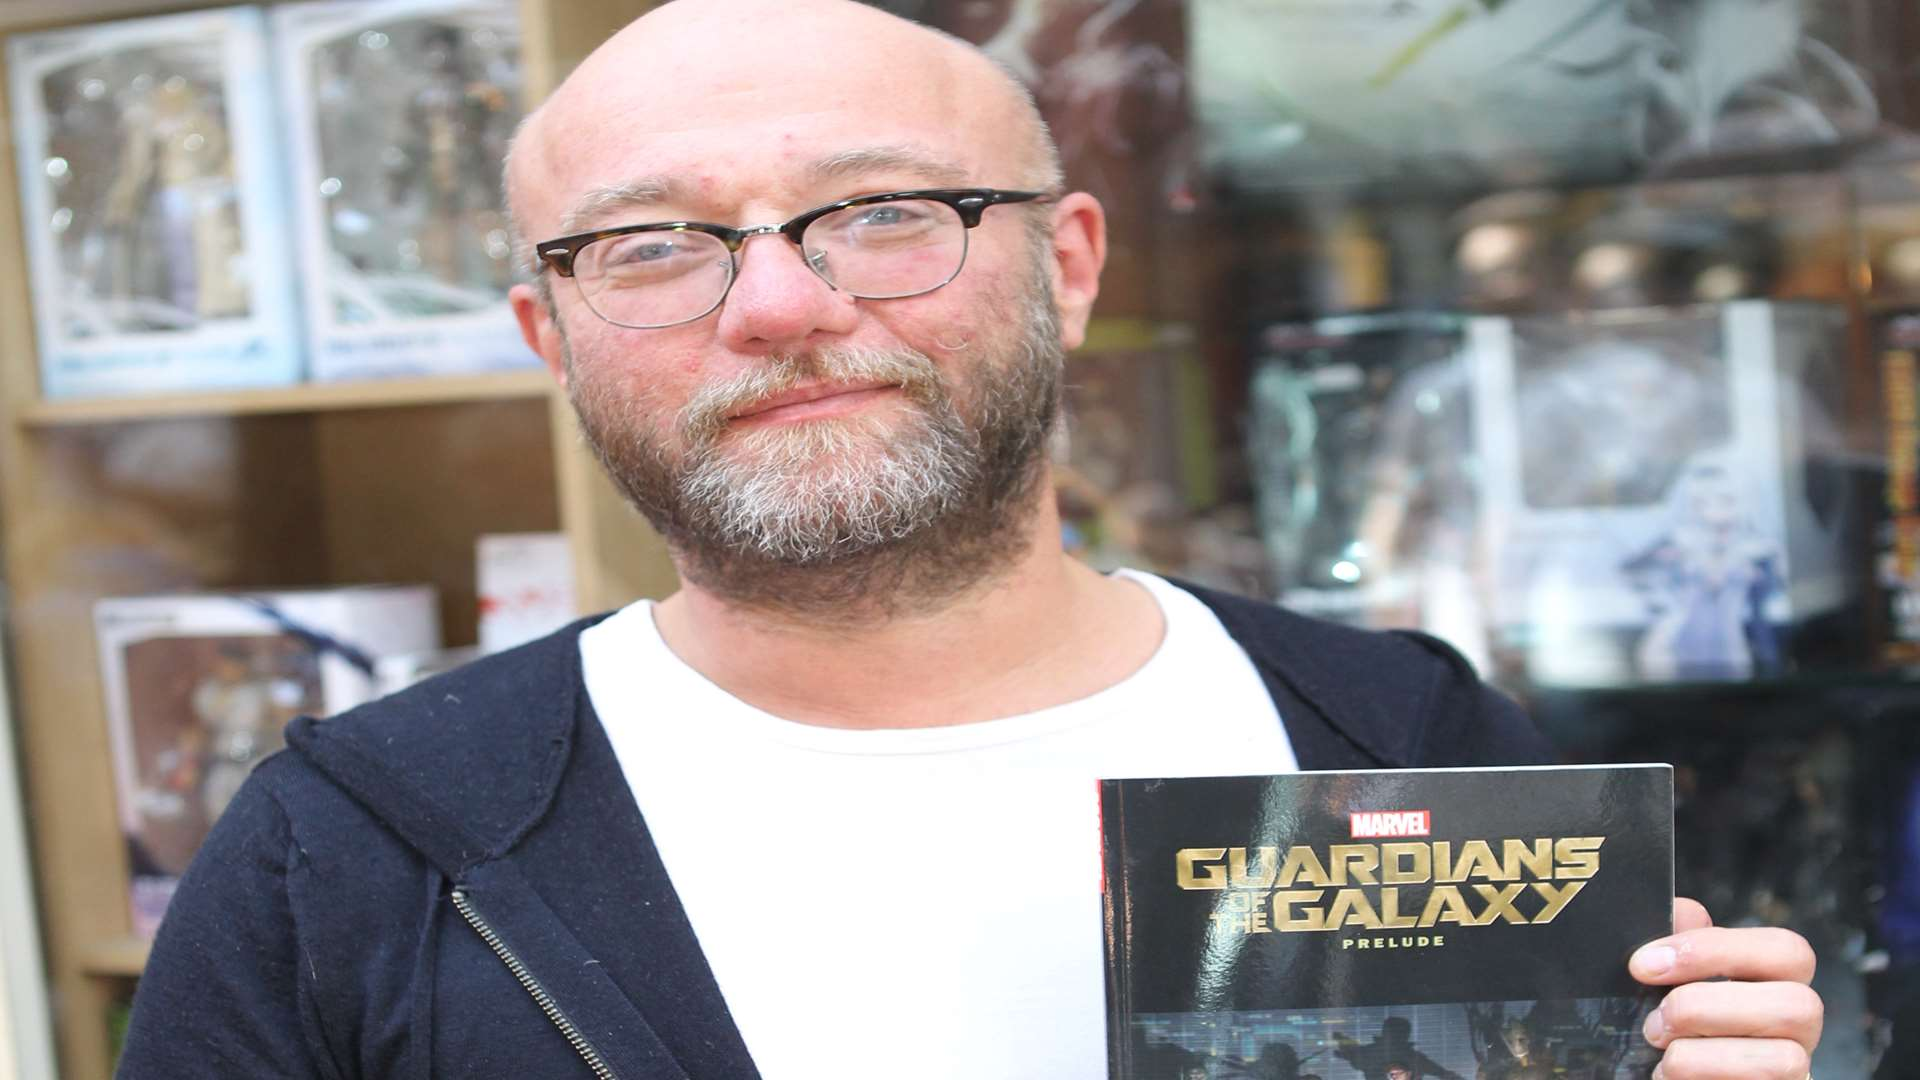 Dan Abnett's comic book inspired the movie Guardians of the Galaxy